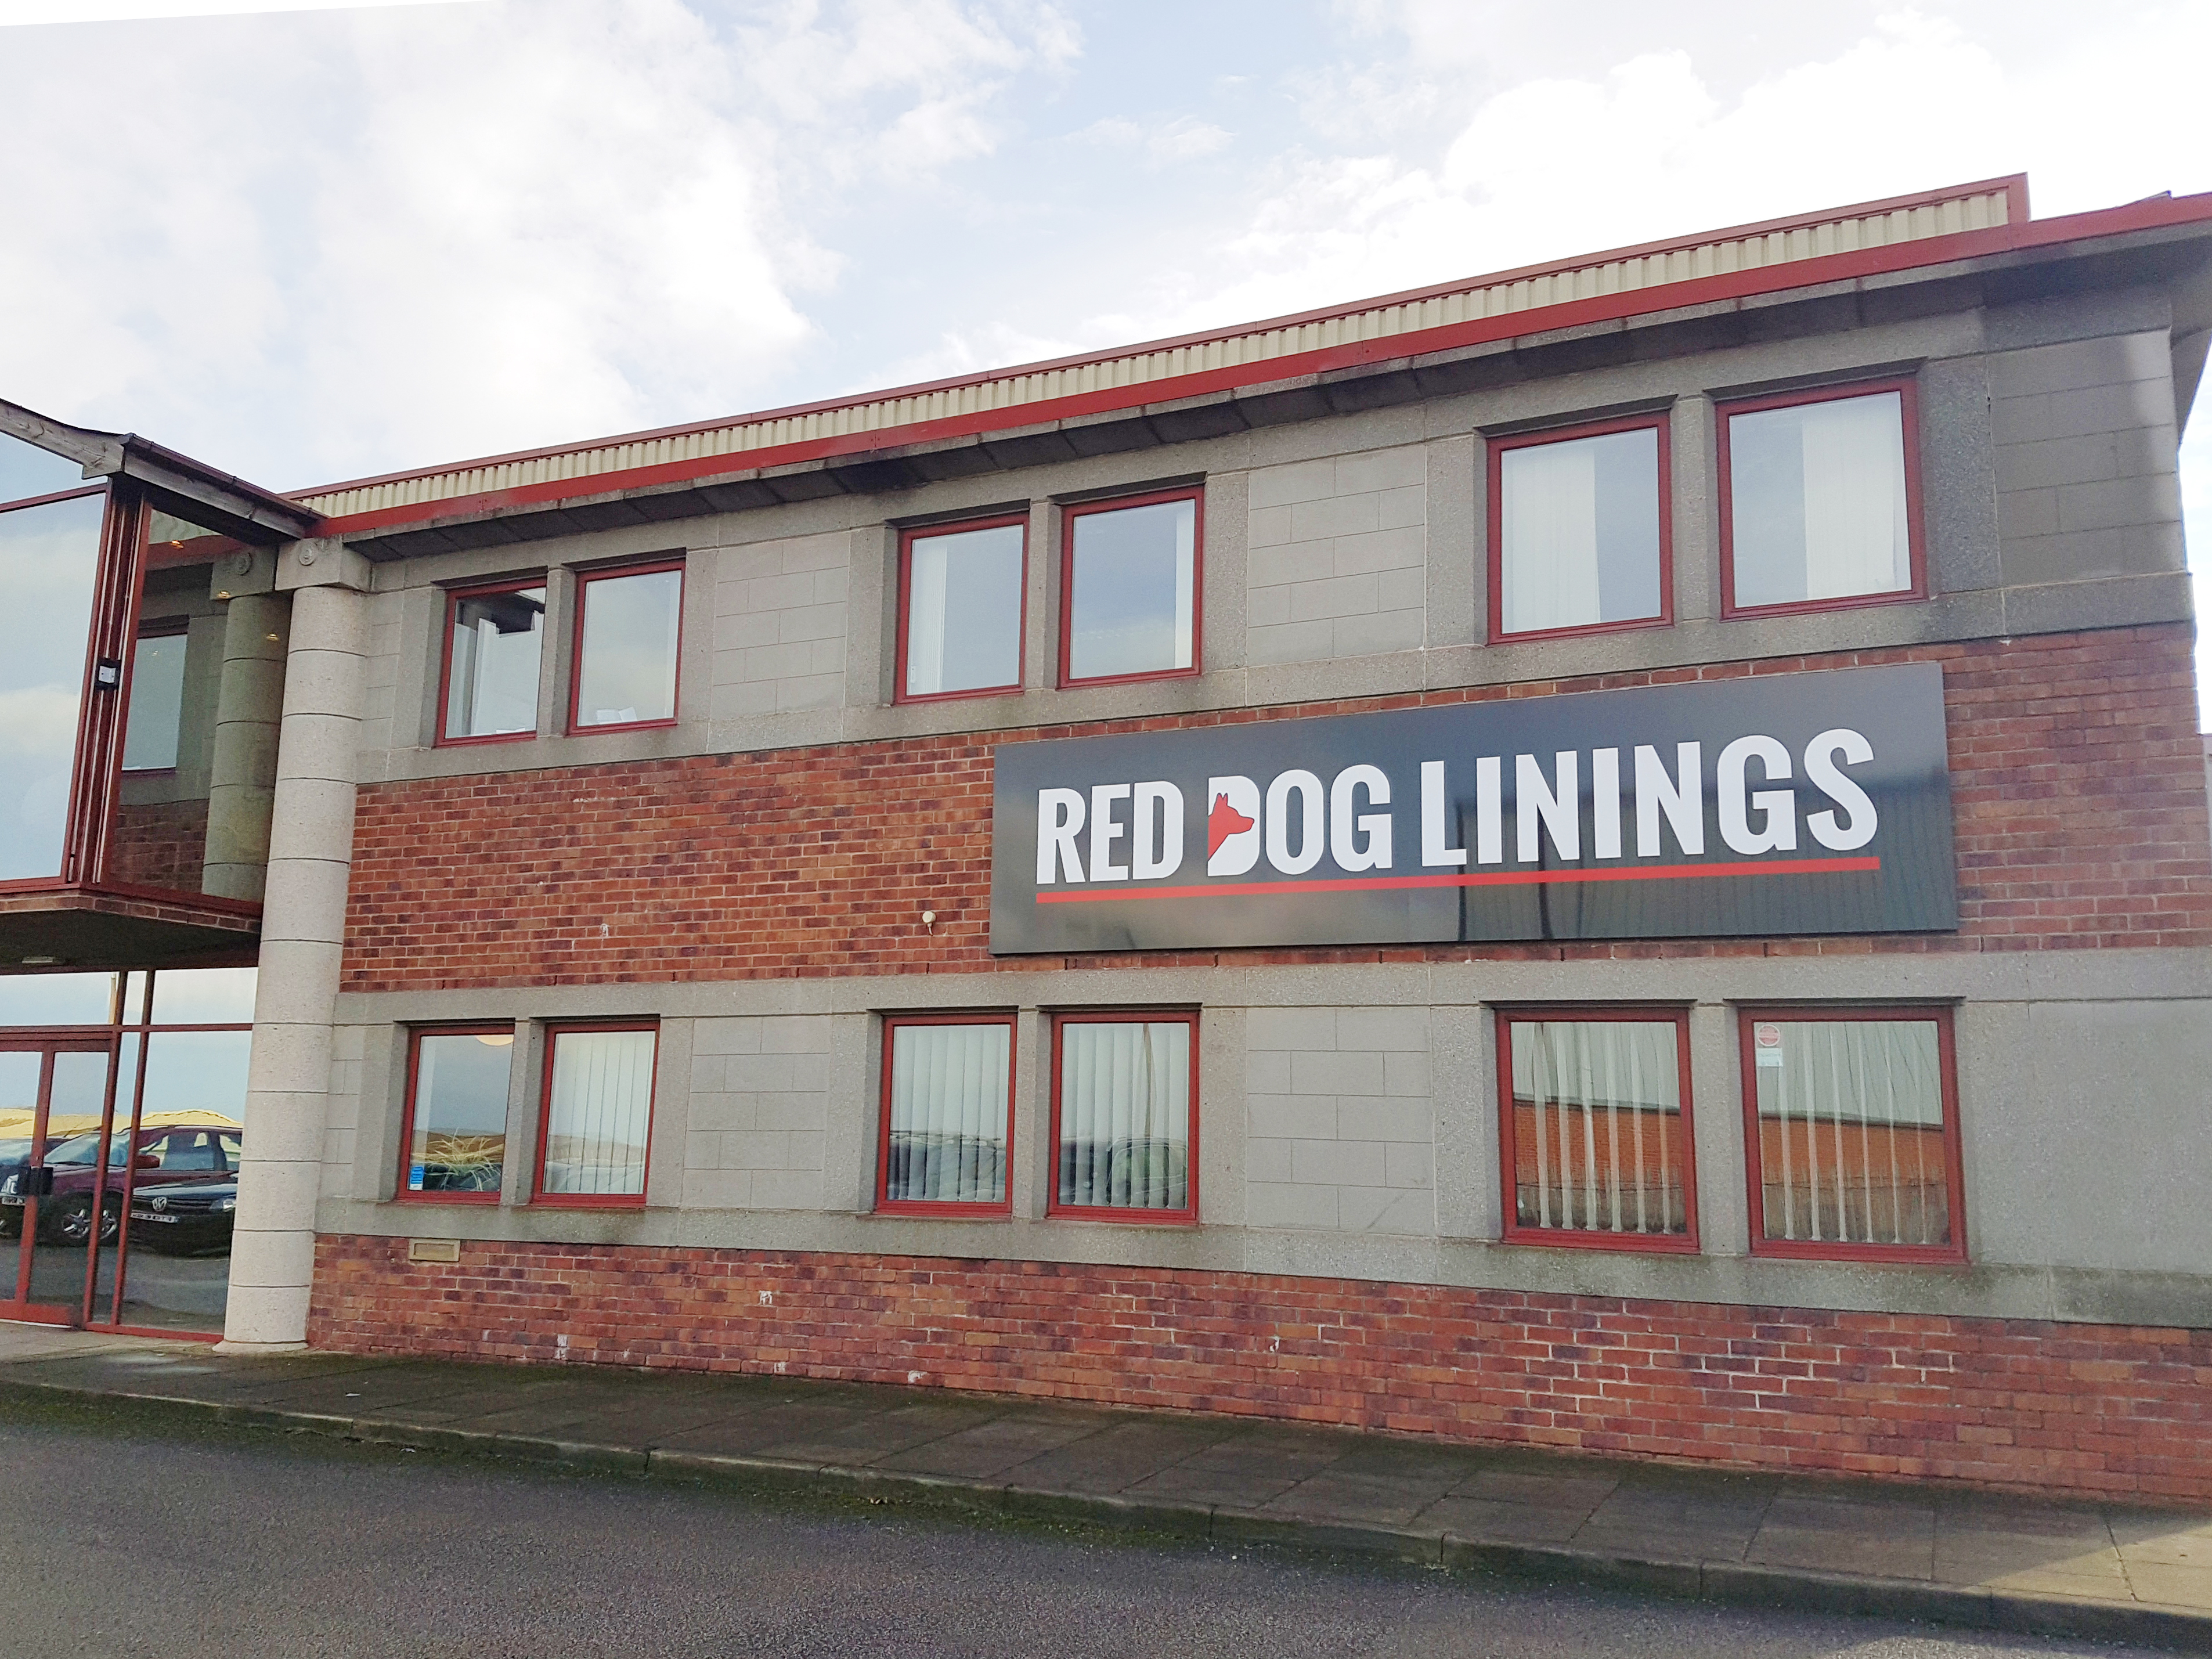 Red Dog Linings Ltd